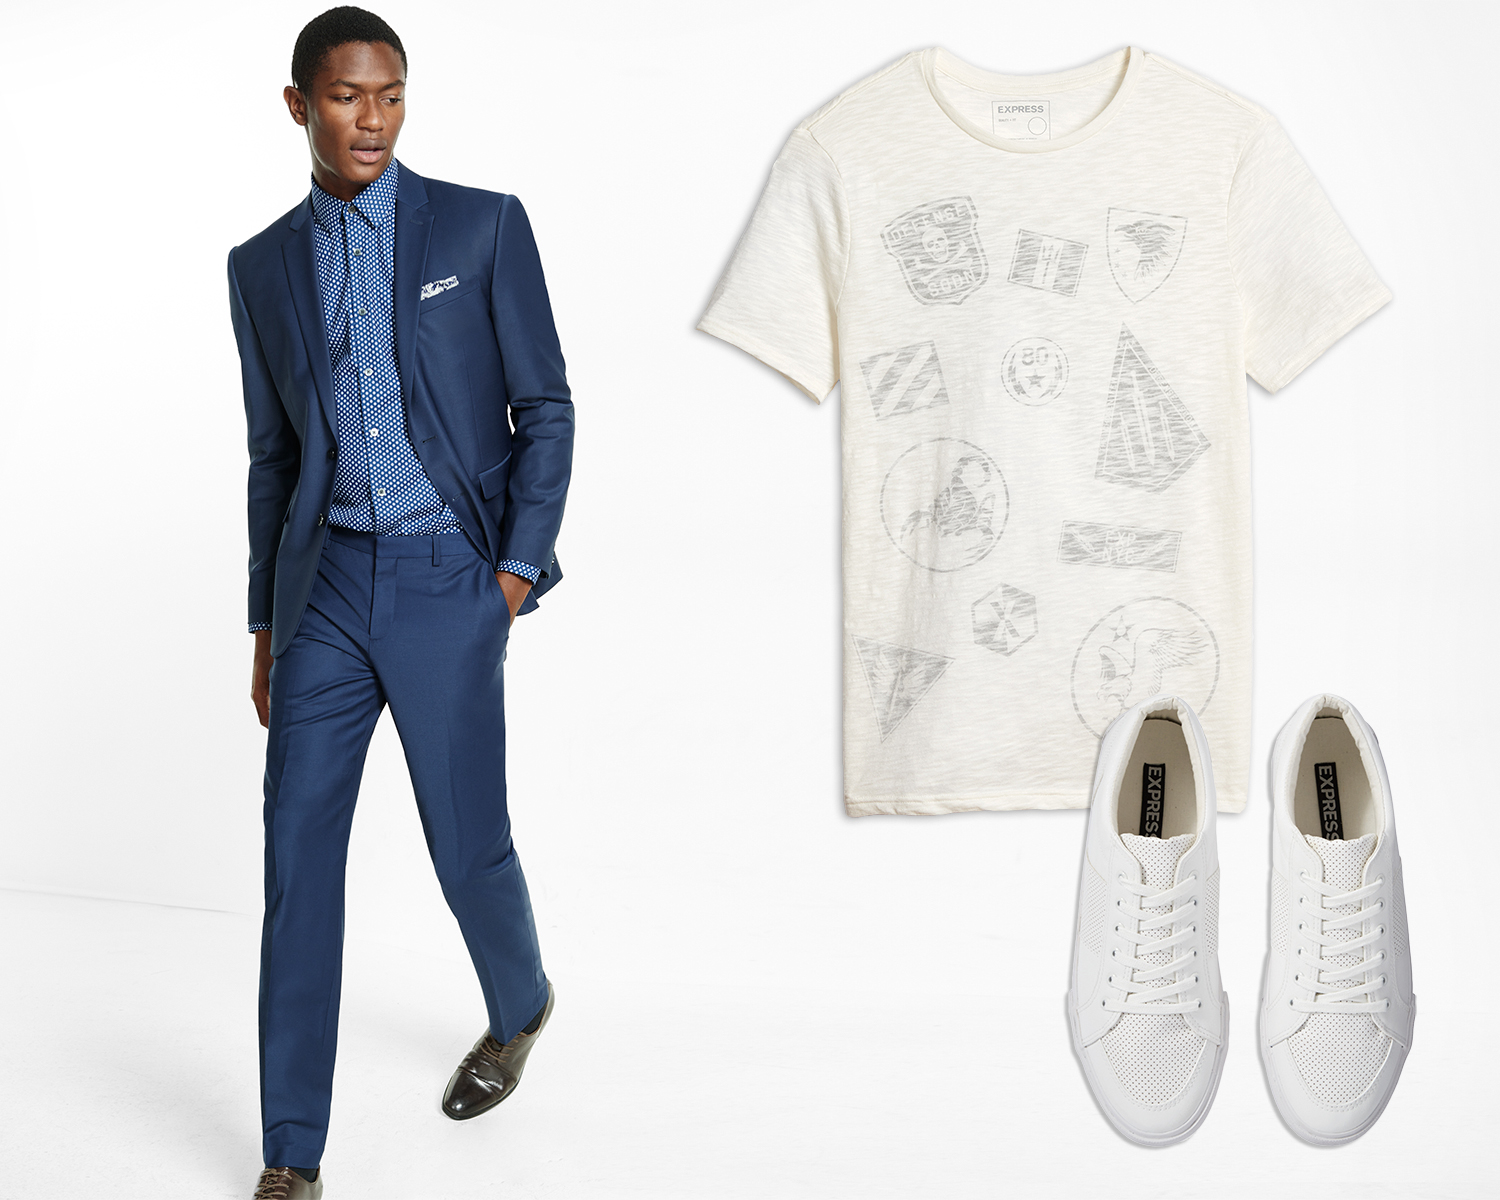 mens-navy-suit-graphic-tee-white-sneakers